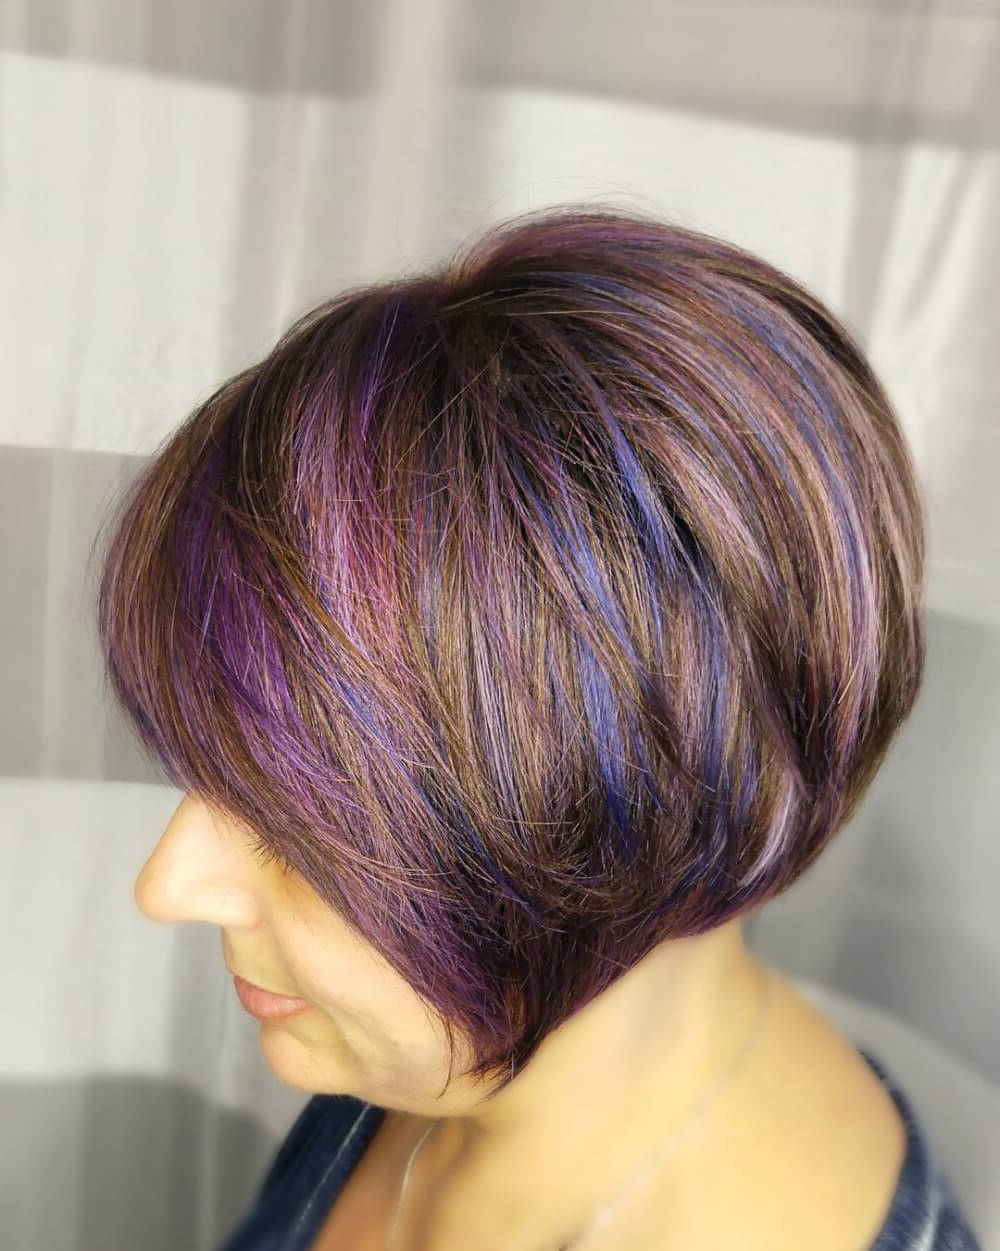 39 Classiest Short Hairstyles For Women Over 50 Of 2018 Intended For Short Length Hairstyles For Women Over  (View 15 of 25)